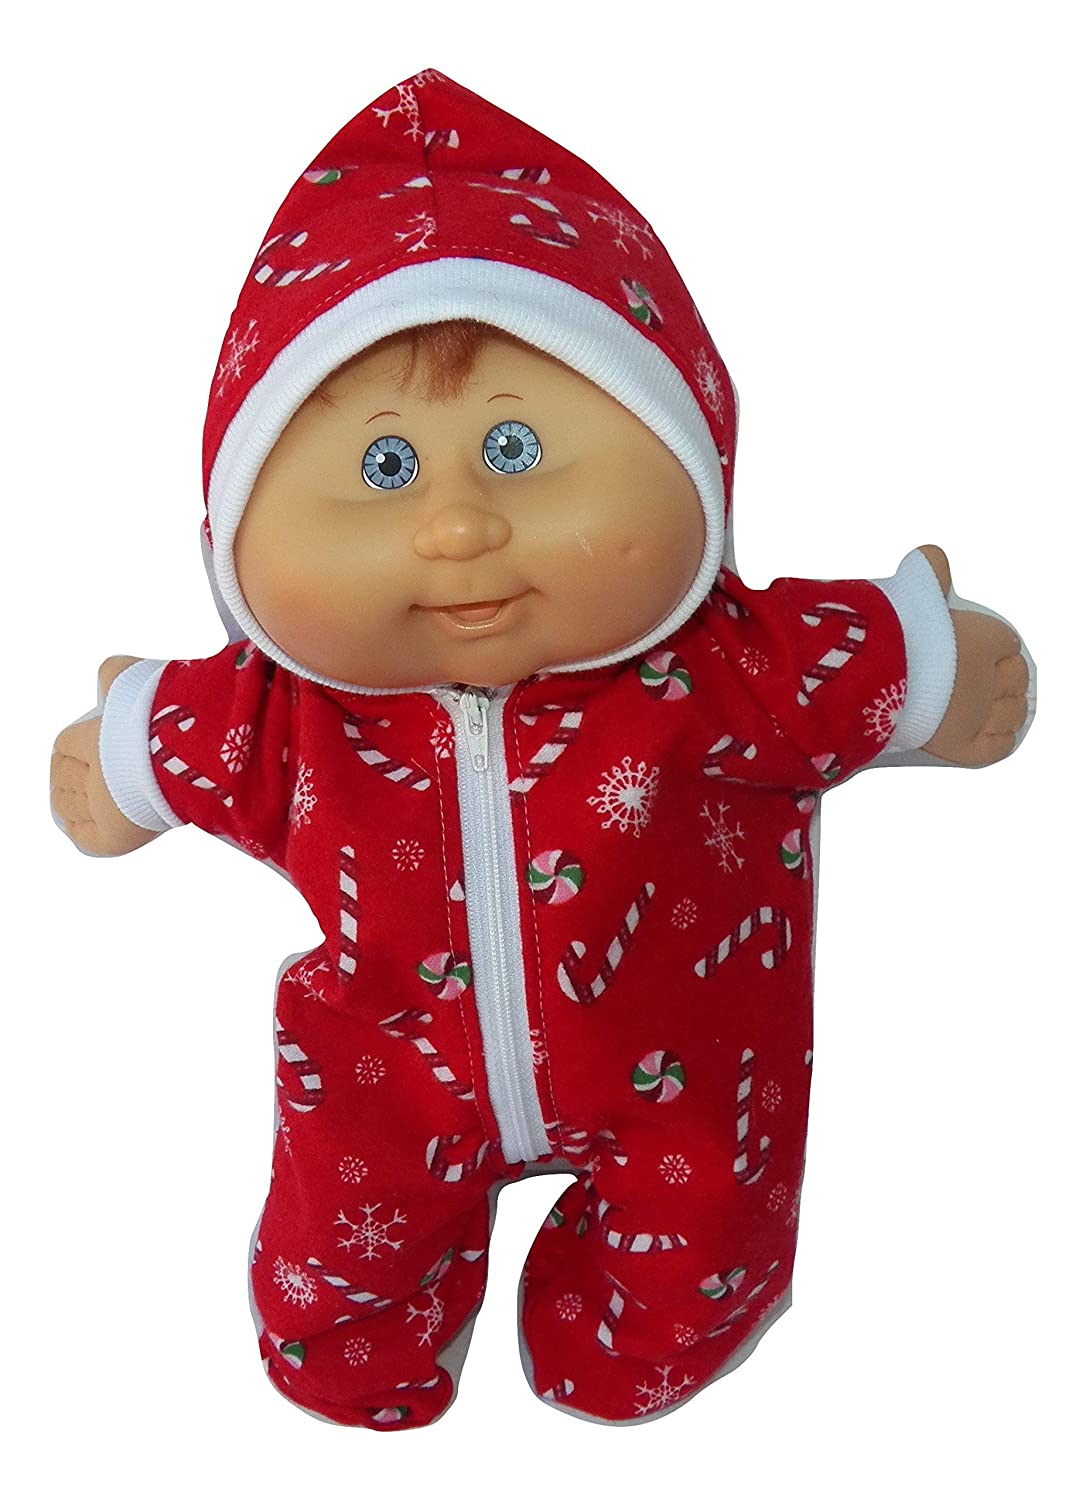 Cabbage Patch Doll Clothes Fits 14 Inch Doll or Preemie Red Candy Cane Print Pajamas Hooded Romper No Doll